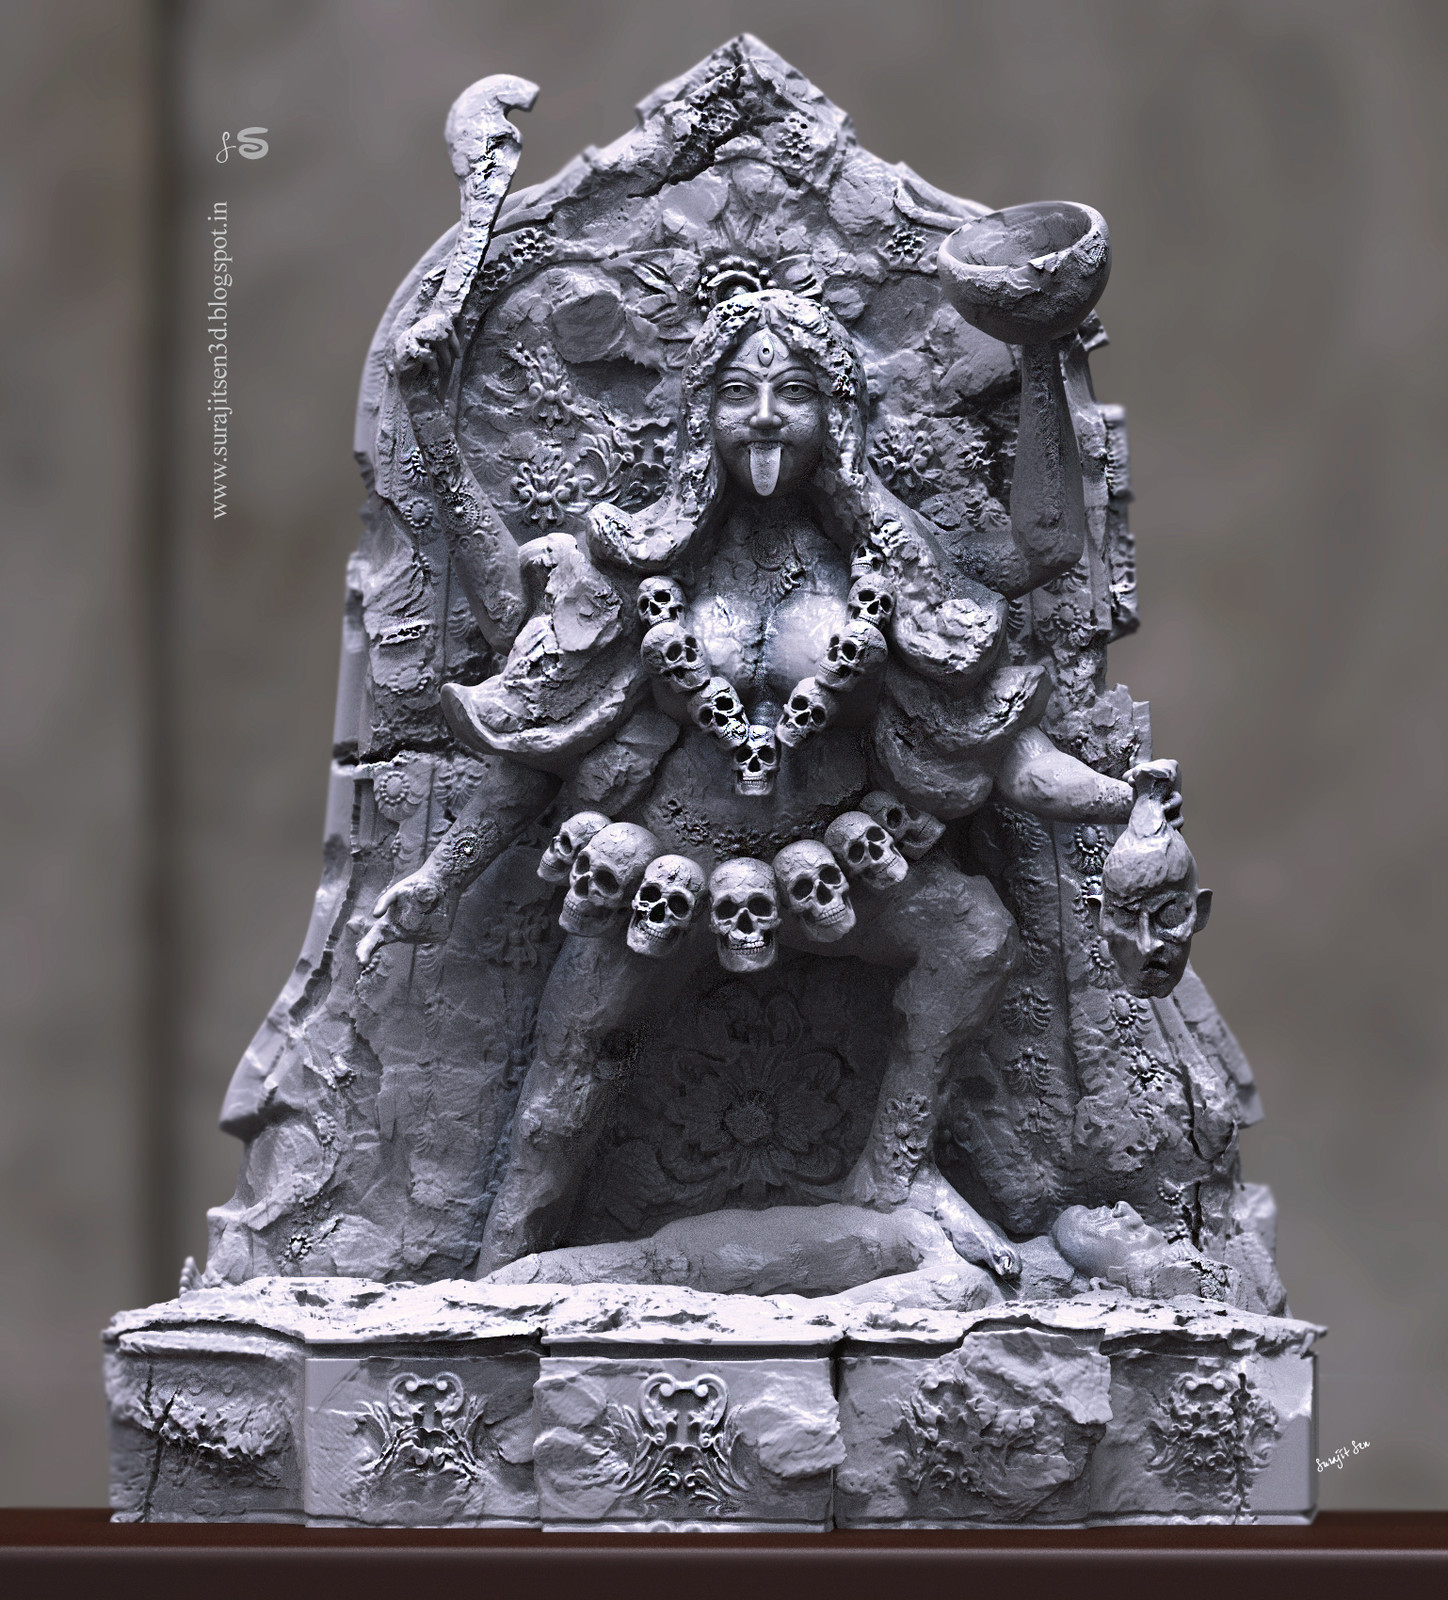 Here I tried to create the form of Goddess Kali, inspired from the ancient Indian relics. I like the hidden art in damaged idols and try to sculpt it digitally.